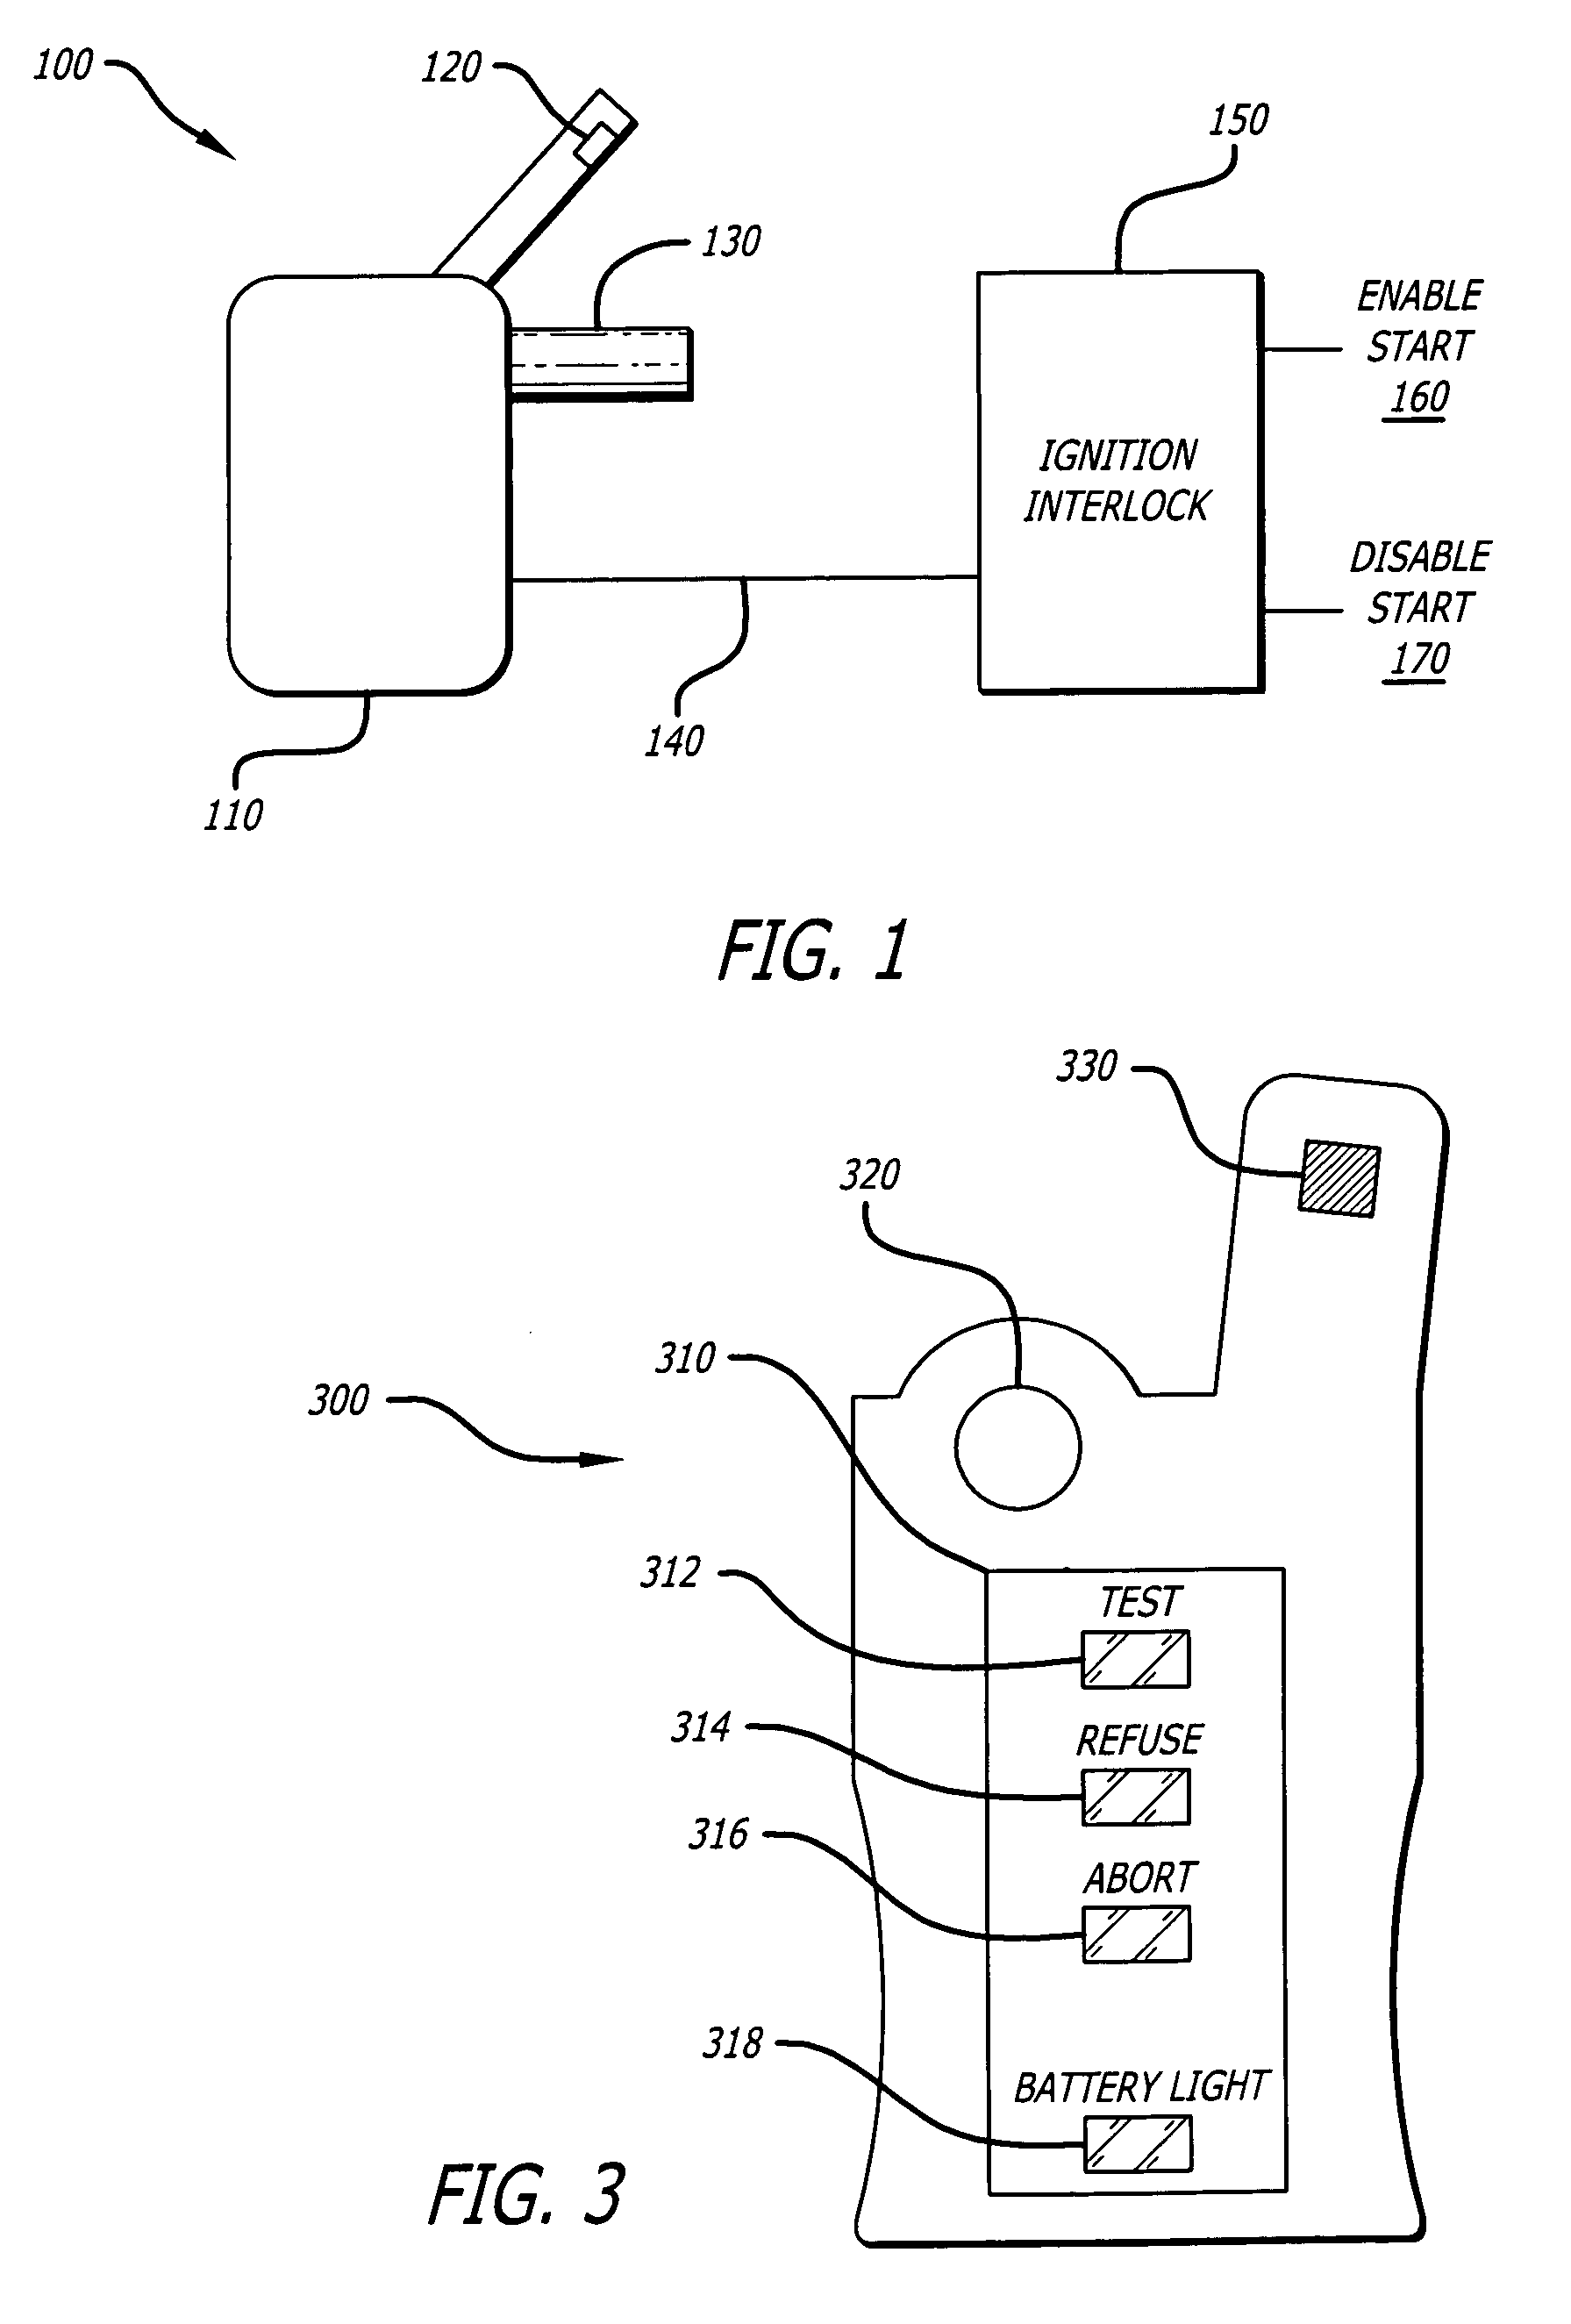 Patent US Breath alcohol detection system with